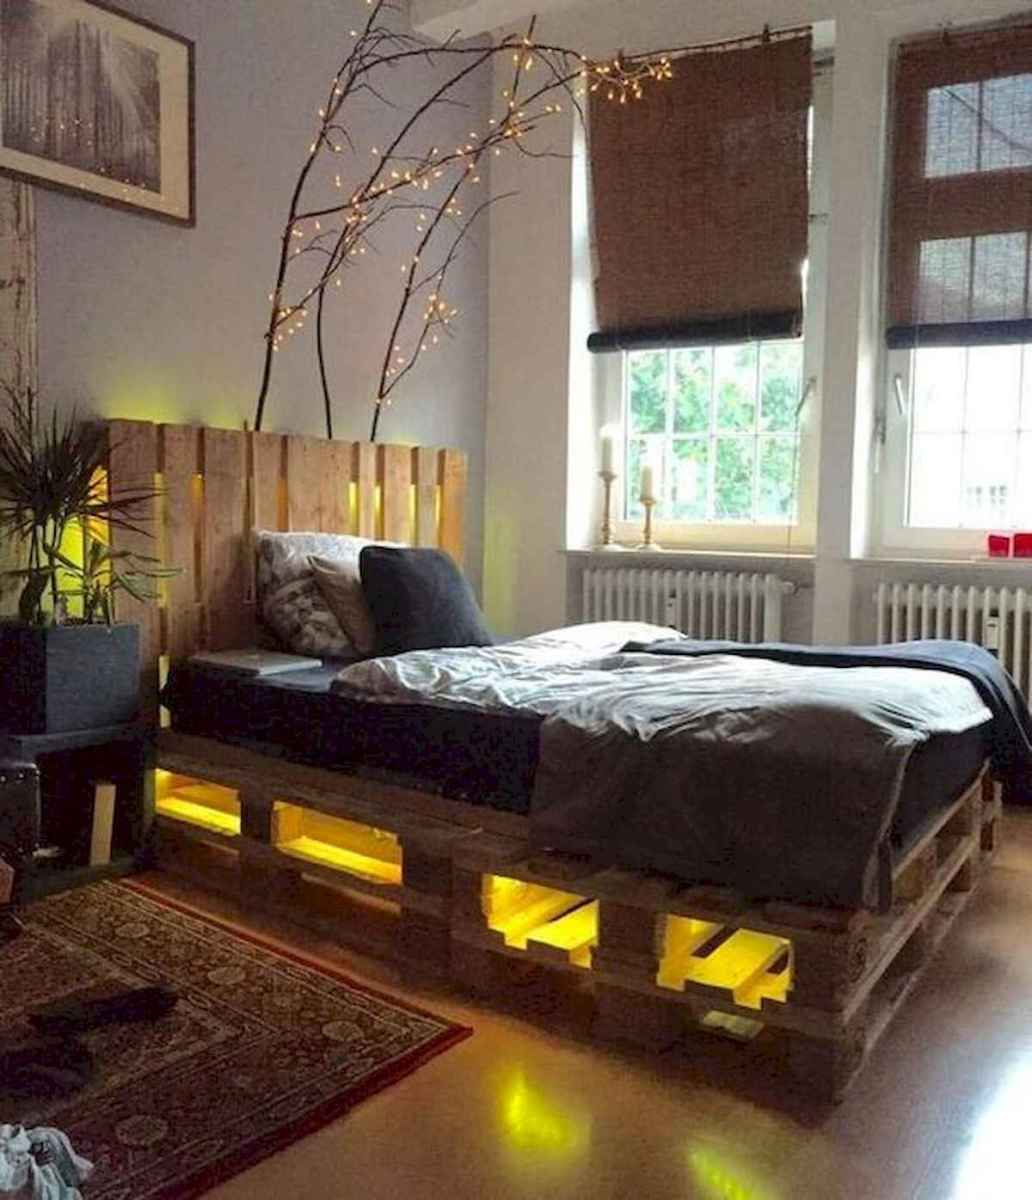 50 Creative Recycled DIY Projects Pallet Beds Design Ideas (14)